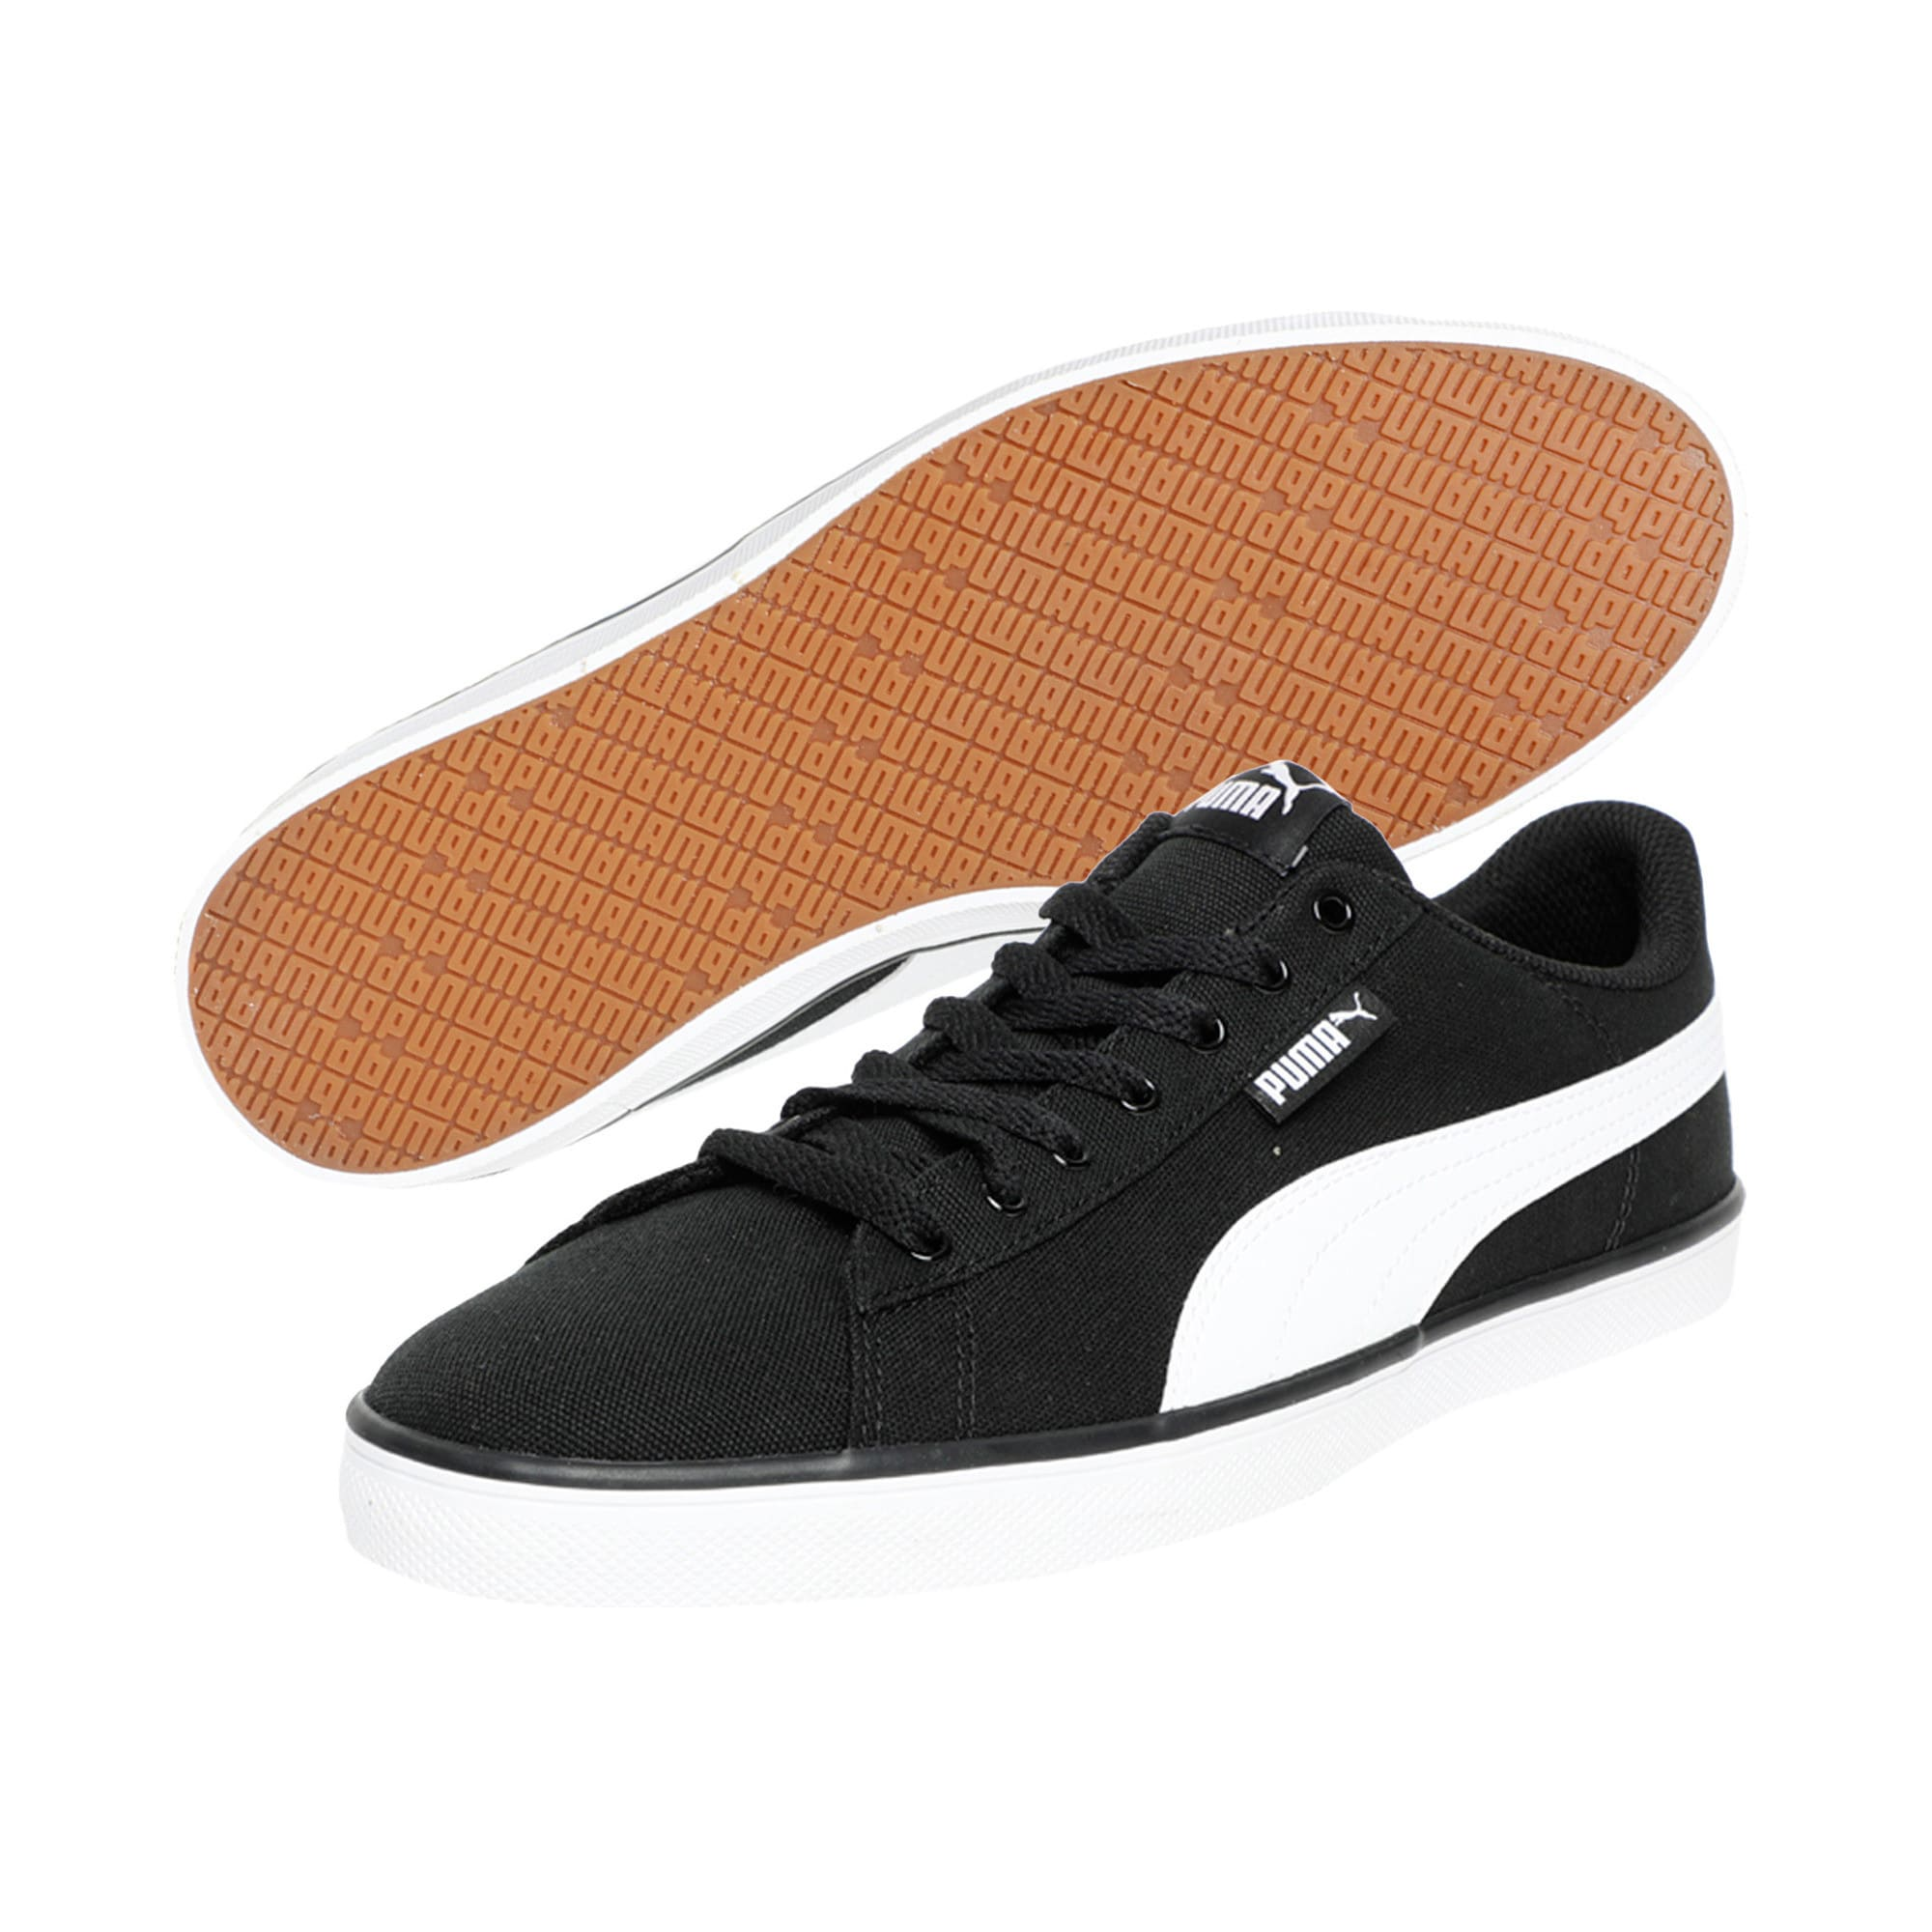 Thumbnail 2 of Urban Plus CV, Puma Black-Puma White, medium-IND